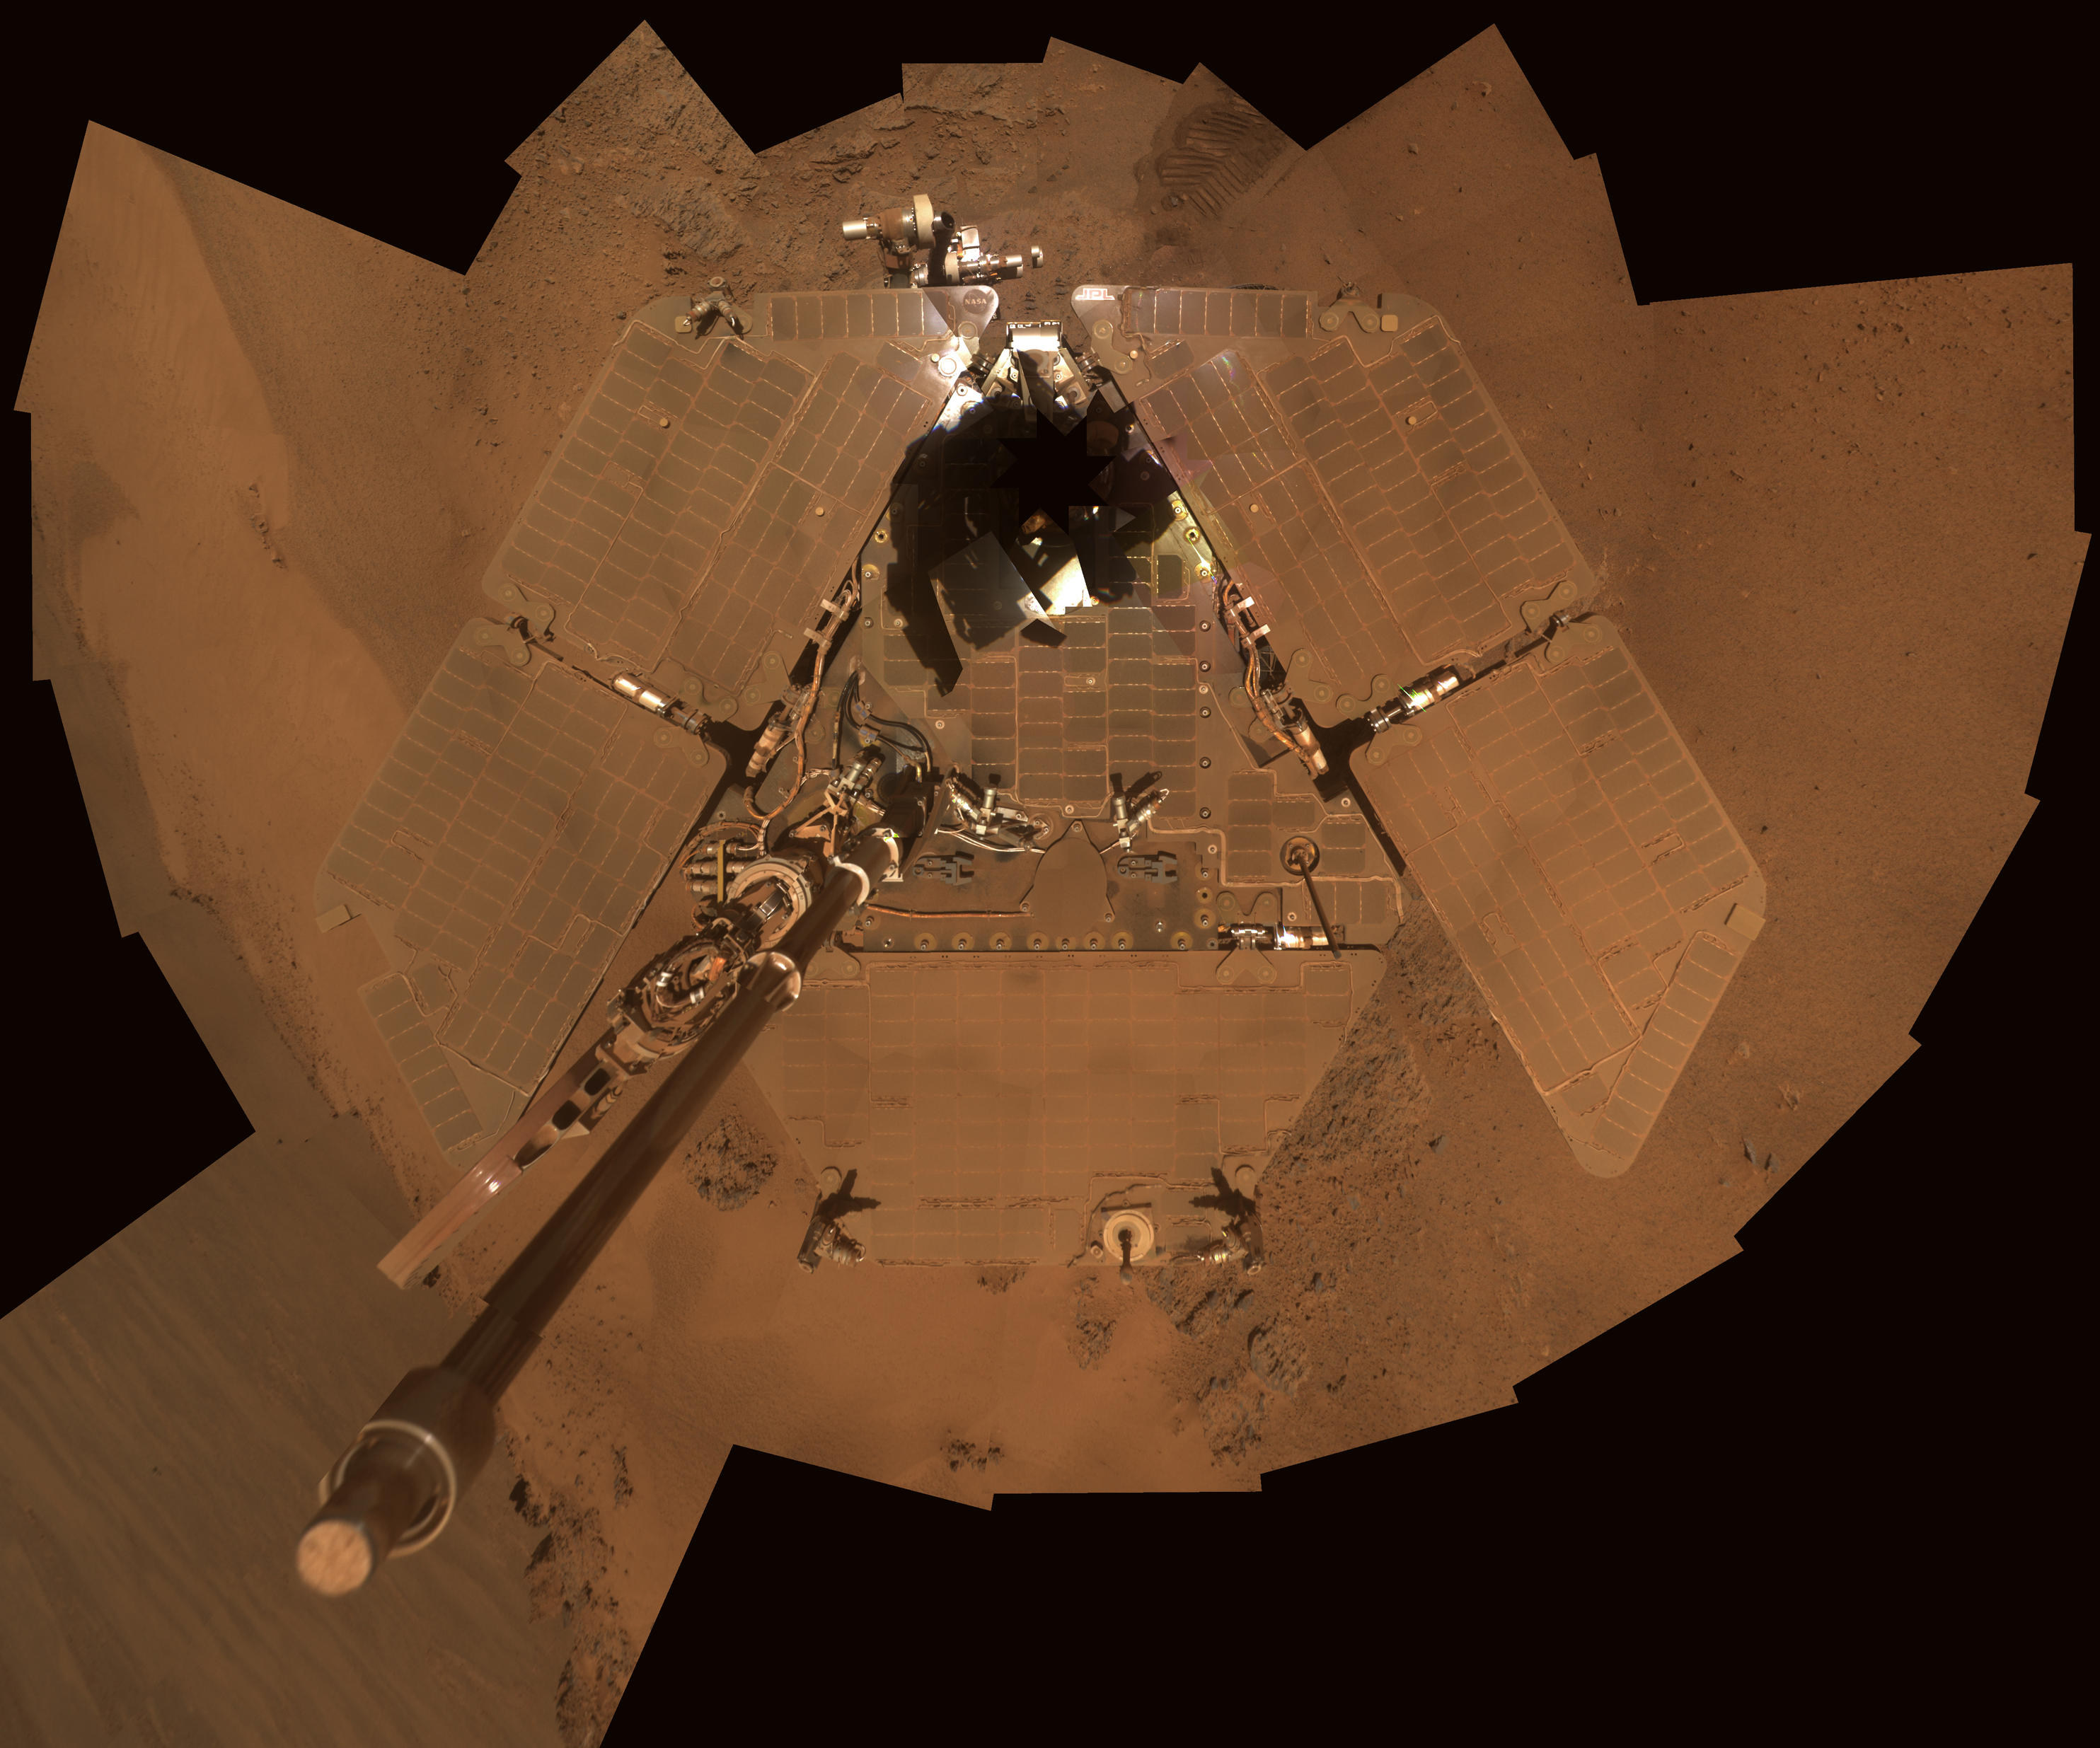 This self-portrait from Opportunity shows dust accumulation on the rover's solar panels as the mission approached its fifth Martian winter.